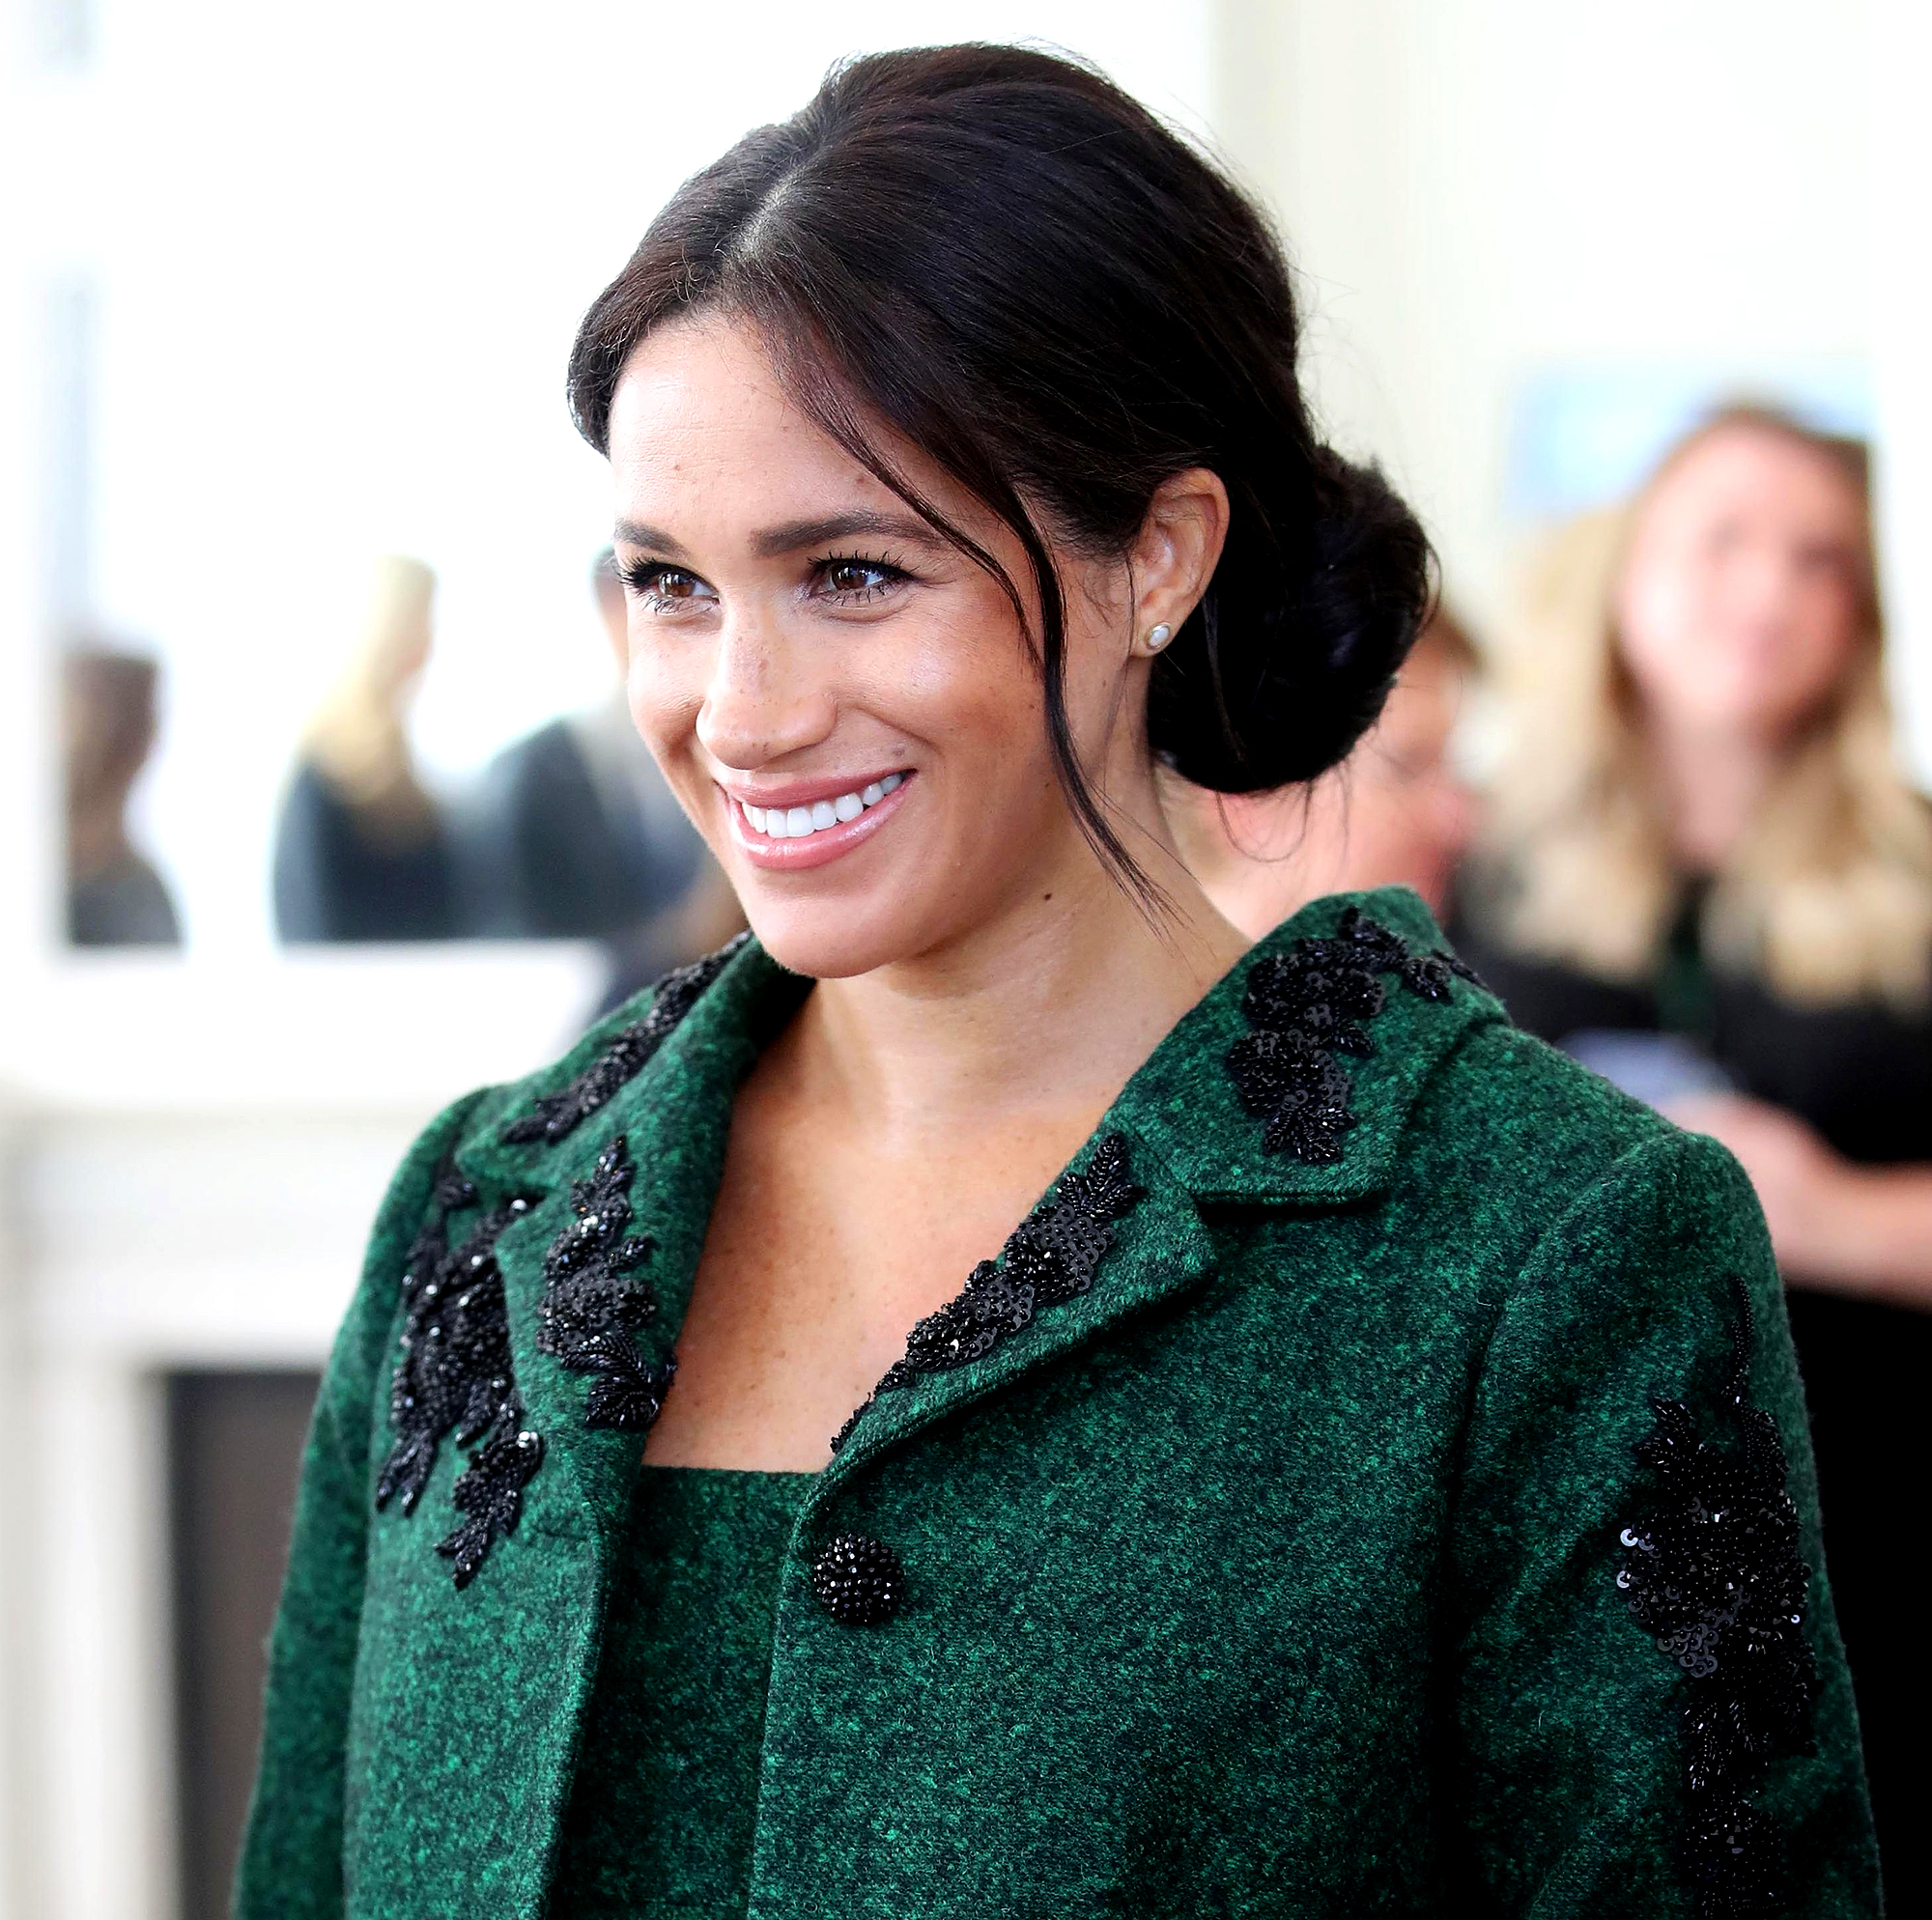 Duchess-Meghan-doesn't-regret-baby-shower-NYC